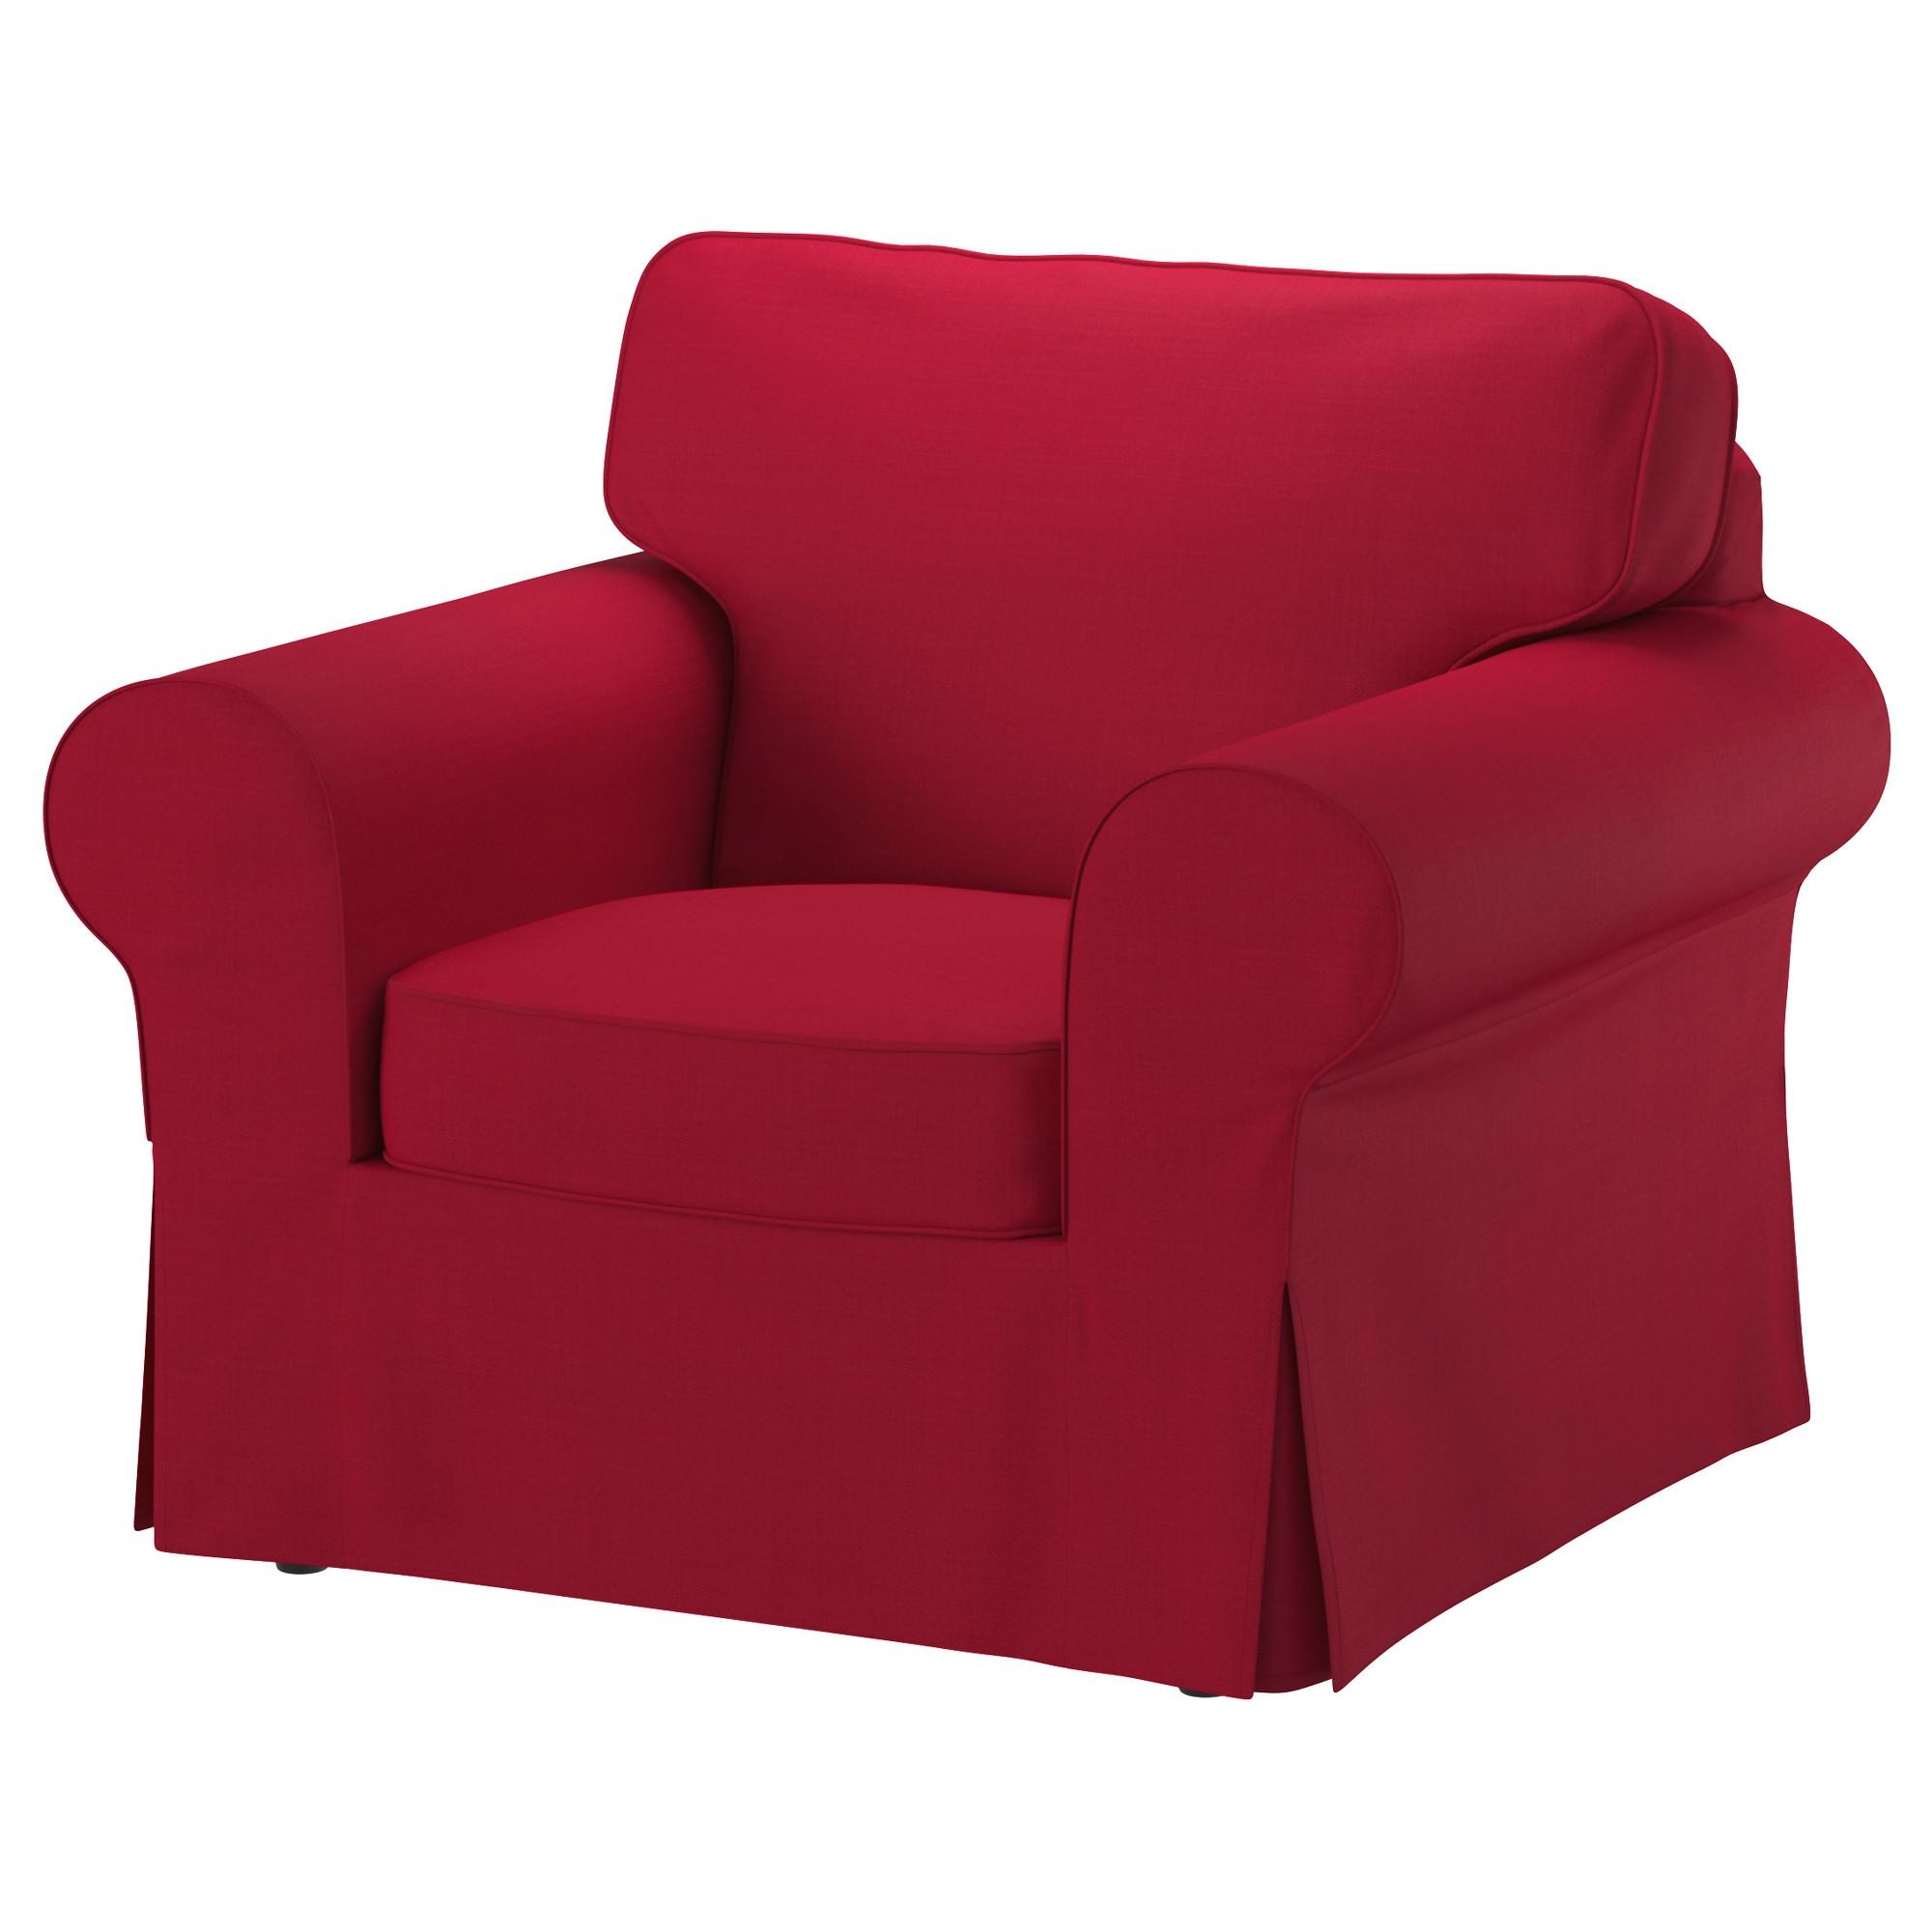 Ektorp Armchair - Nordvalla Red - Ikea pertaining to Red Sofa Beds Ikea